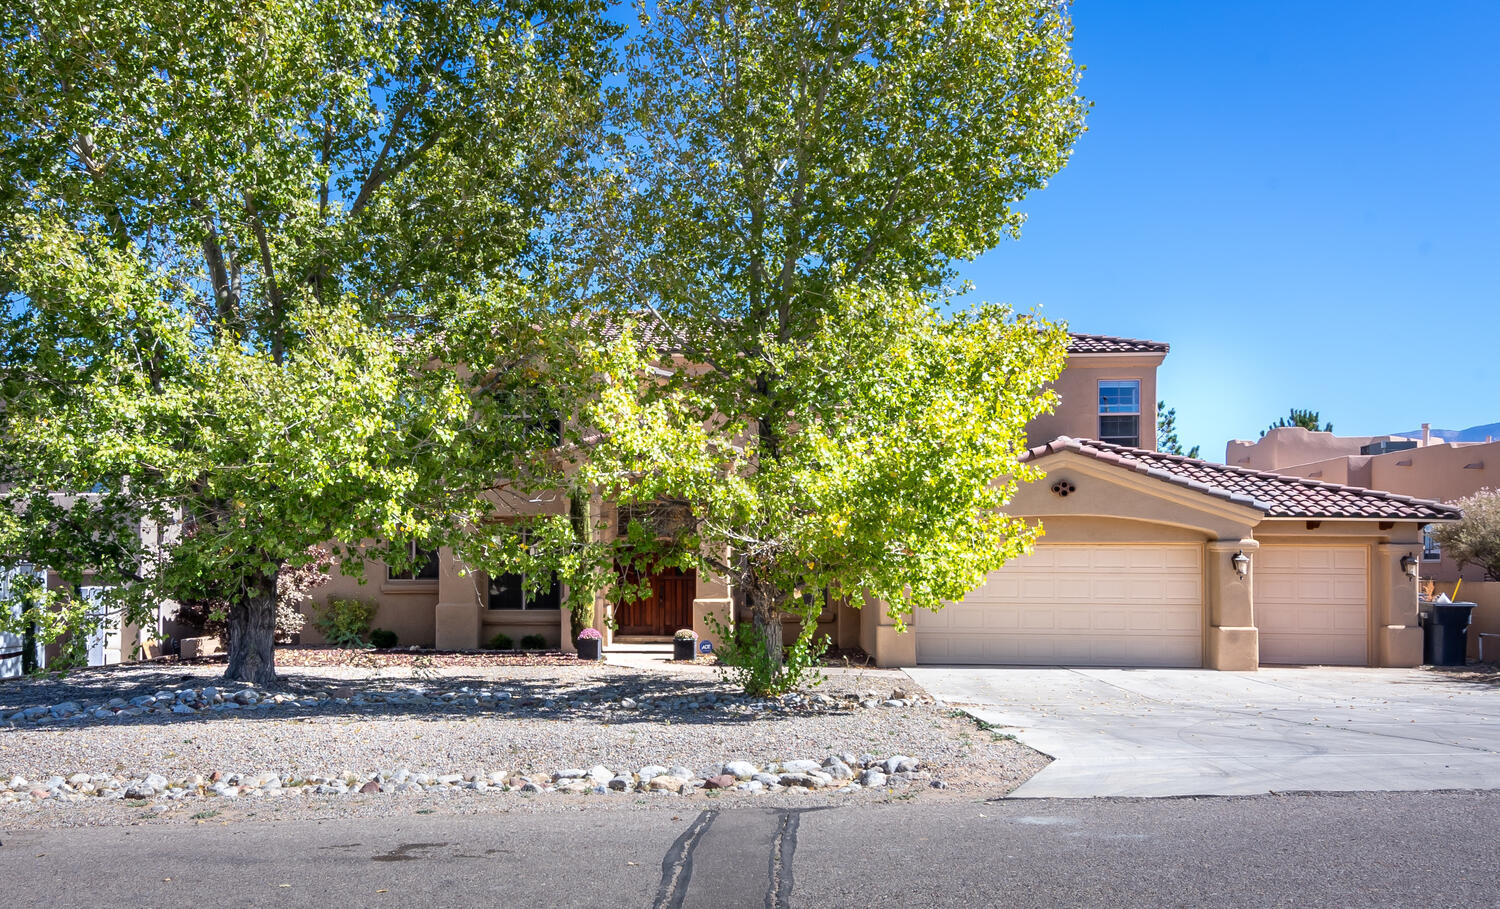 Beautiful custom built 5 bedrm home on a cul-de-sac offers awesome views of the Sandia Mts!  The open floor plan is great for casual living or entertaining family & friends. A private, first floor master bedrm suite has a door to the covered patio & backyard swimming pool. The bright & open kitchen w/ East facing windows has an island, eat in bkfst area, pantry, built-in refrig, stainls appliances, gas cooktop, granite counters & ample storage. The Great Rm w/ fireplace & built-in cabinets, Formal Dining Rm, & Study are conveniently located on the first floor as well. The second floor has 4 bedrms, two full  bathrms & a huge, very open Upstairs Living Area. This casual living area separates the bedrms,  with two bedrms & one bath on either side.  Lovely, very livable home w/ 3 car garage!